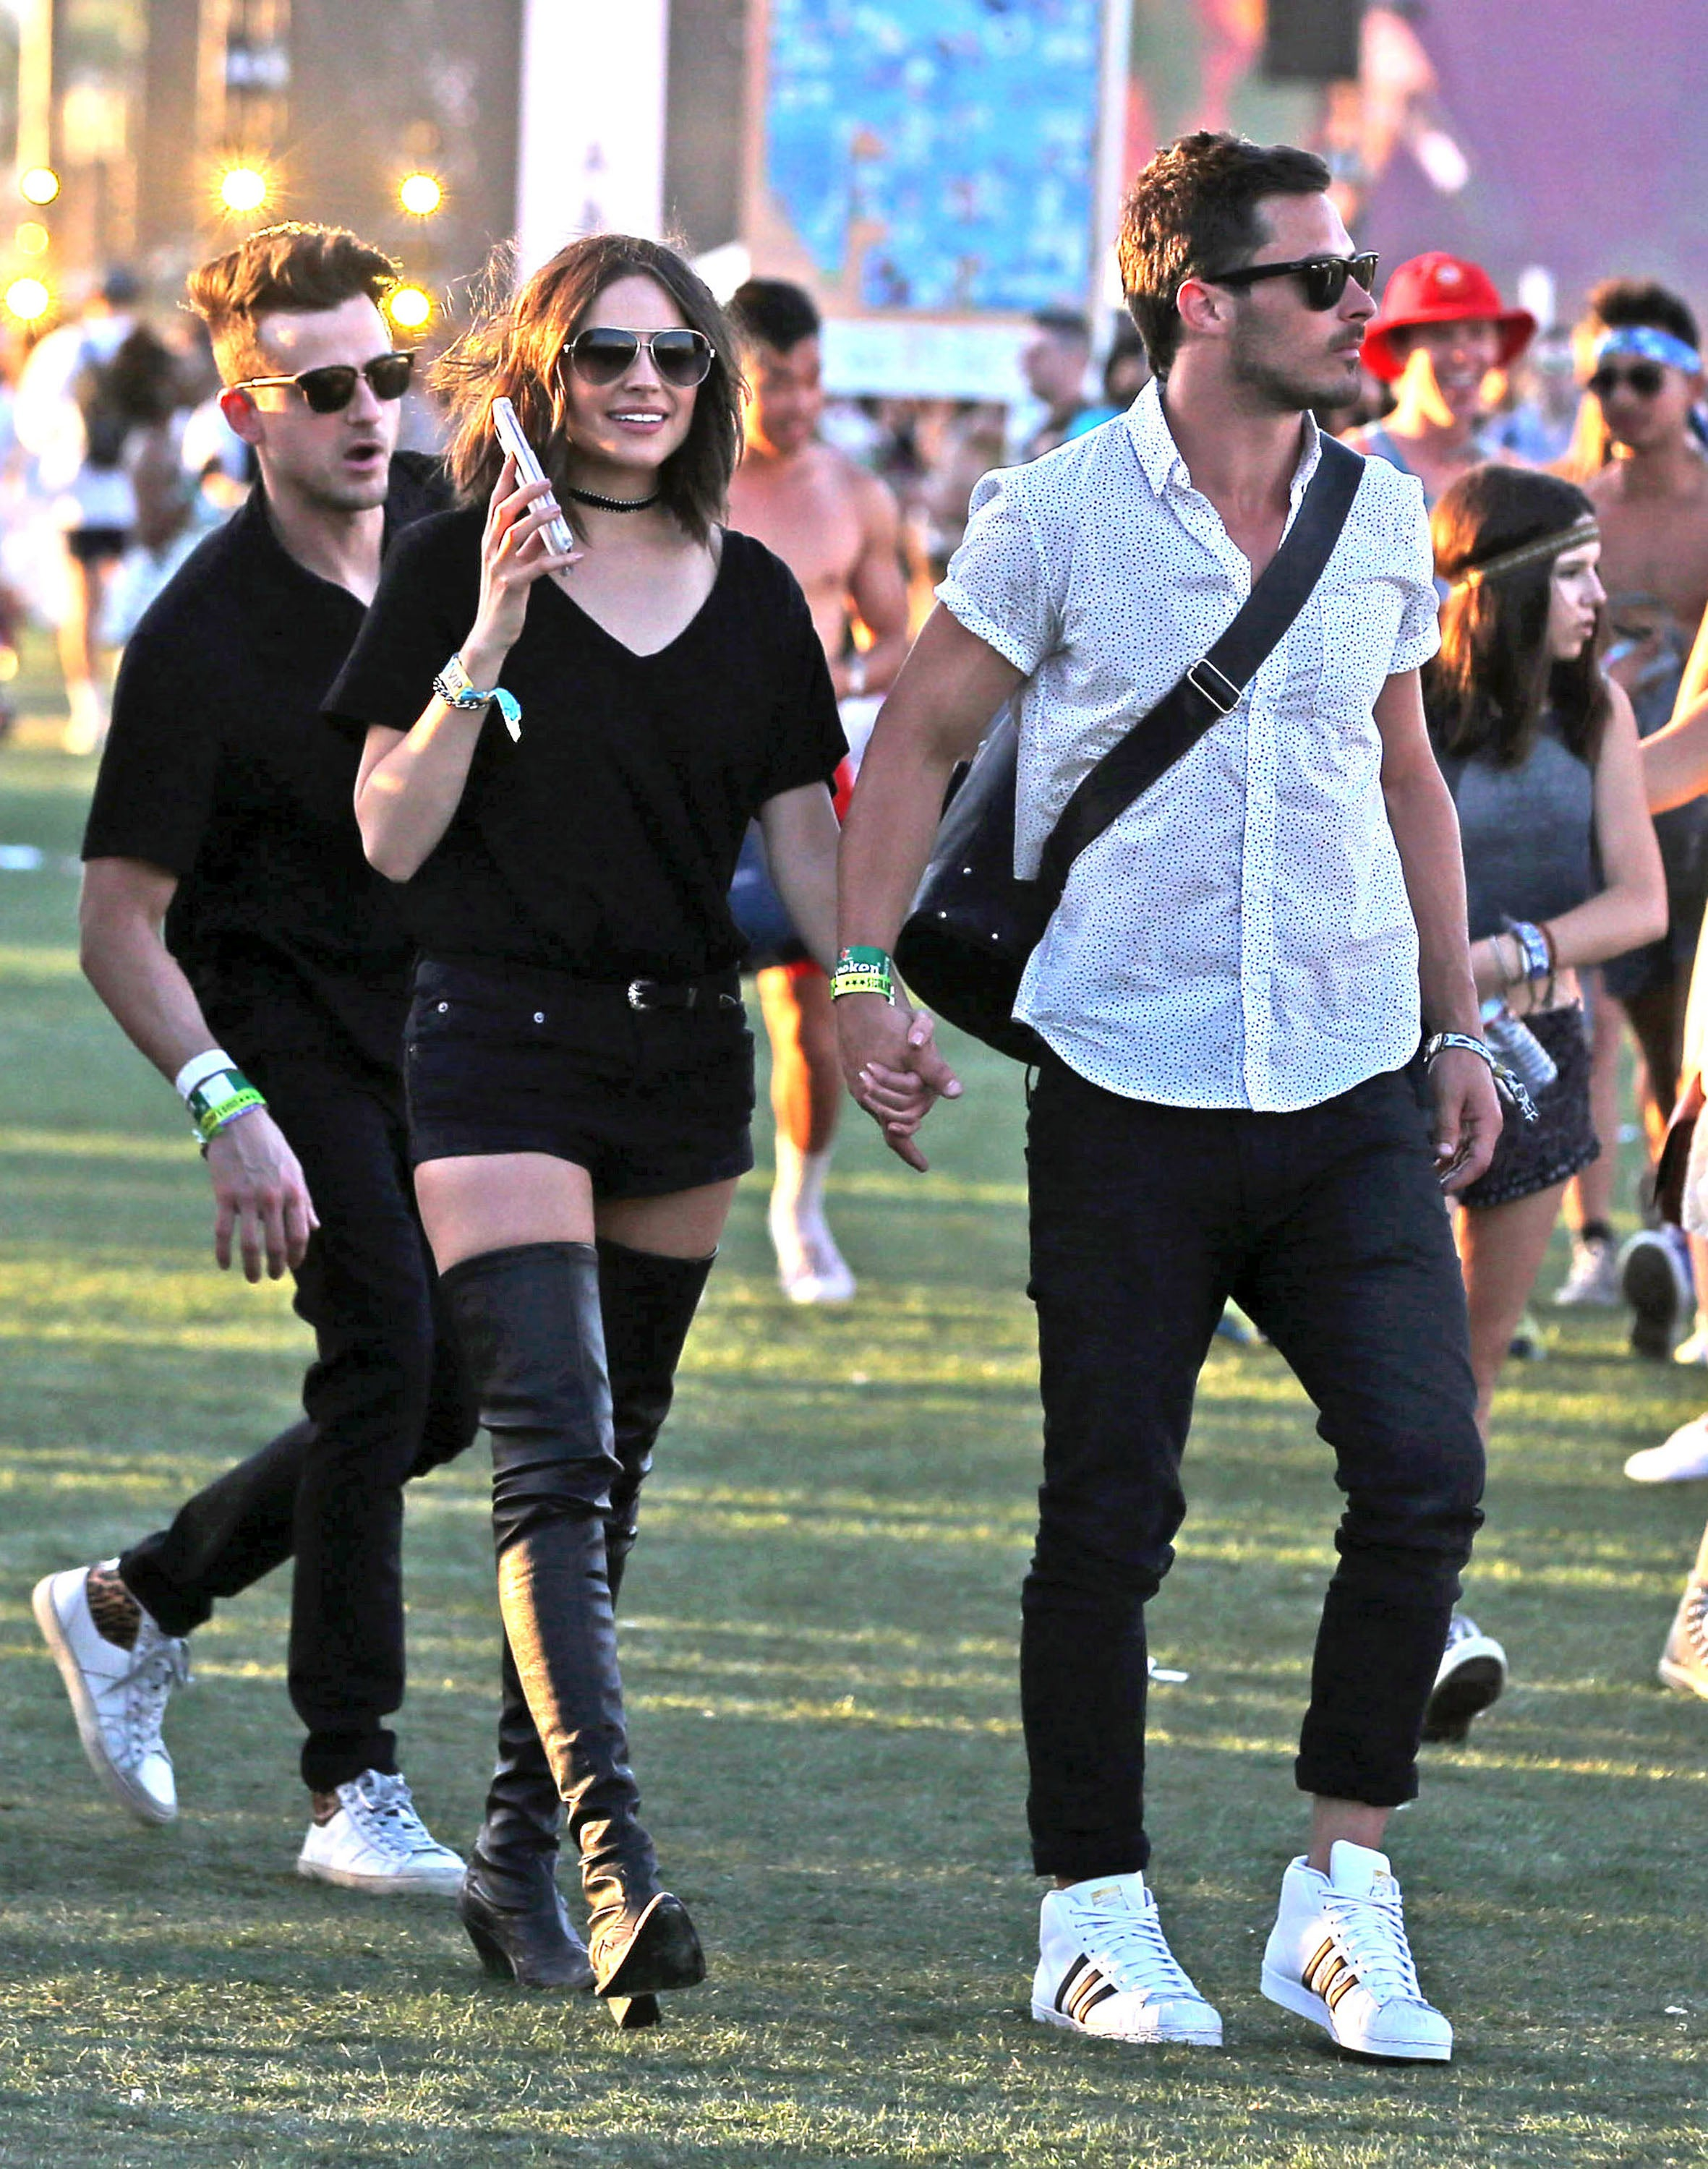 52027087 Celebrities at Day 2 of first weekend of The Coachella Valley Music and Arts Festival in Coachella, California on April 16, 2015. Celebrities at Day 2 of first weekend of The Coachella Valley Music and Arts Festival in Coachella, California on April 16, 2015. Pictured: Olivia Culpo FameFlynet, Inc - Beverly Hills, CA, USA - +1 (310) 505-9876